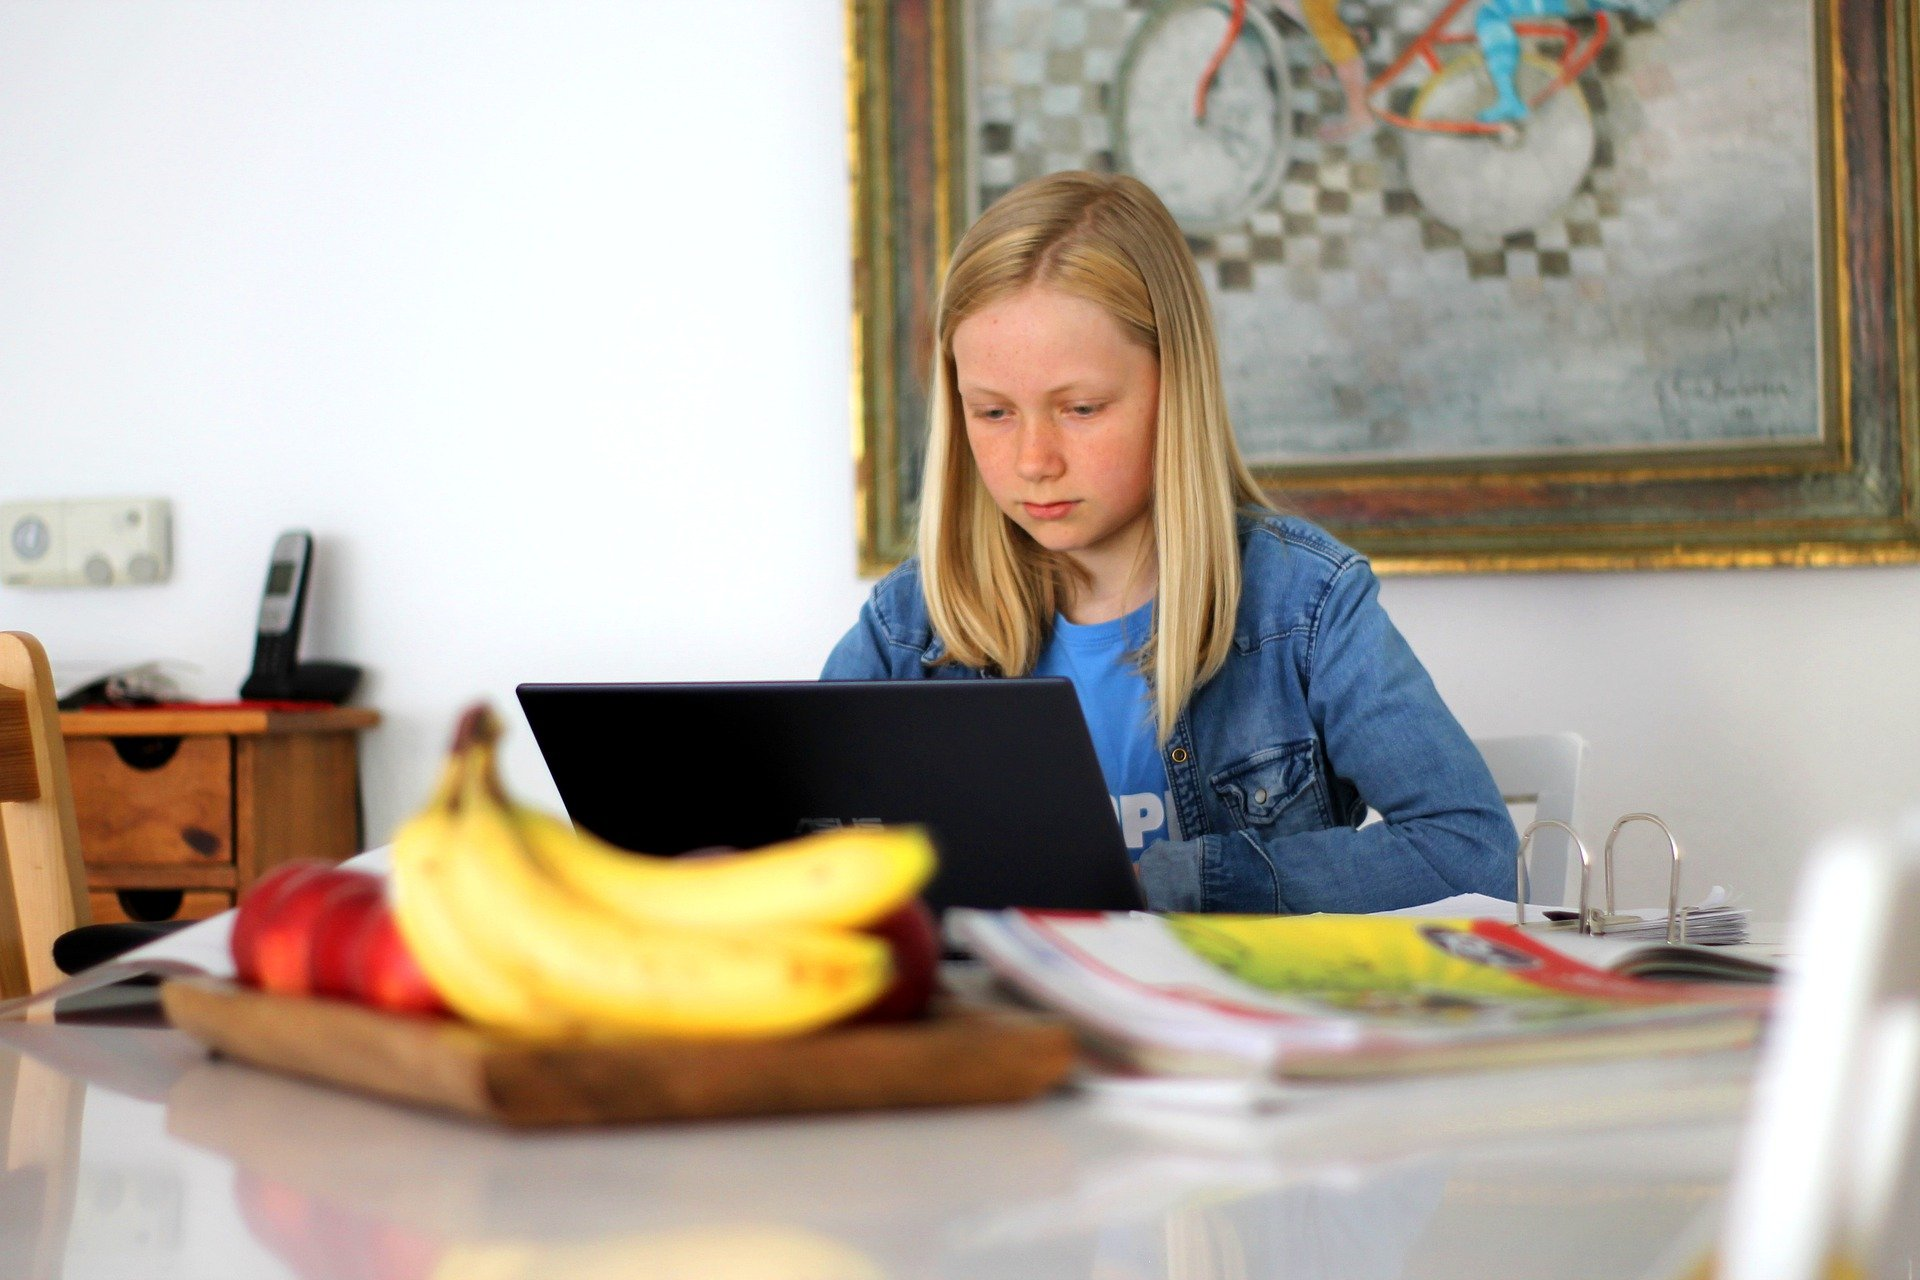 Young girl at kitchen table with open laptop